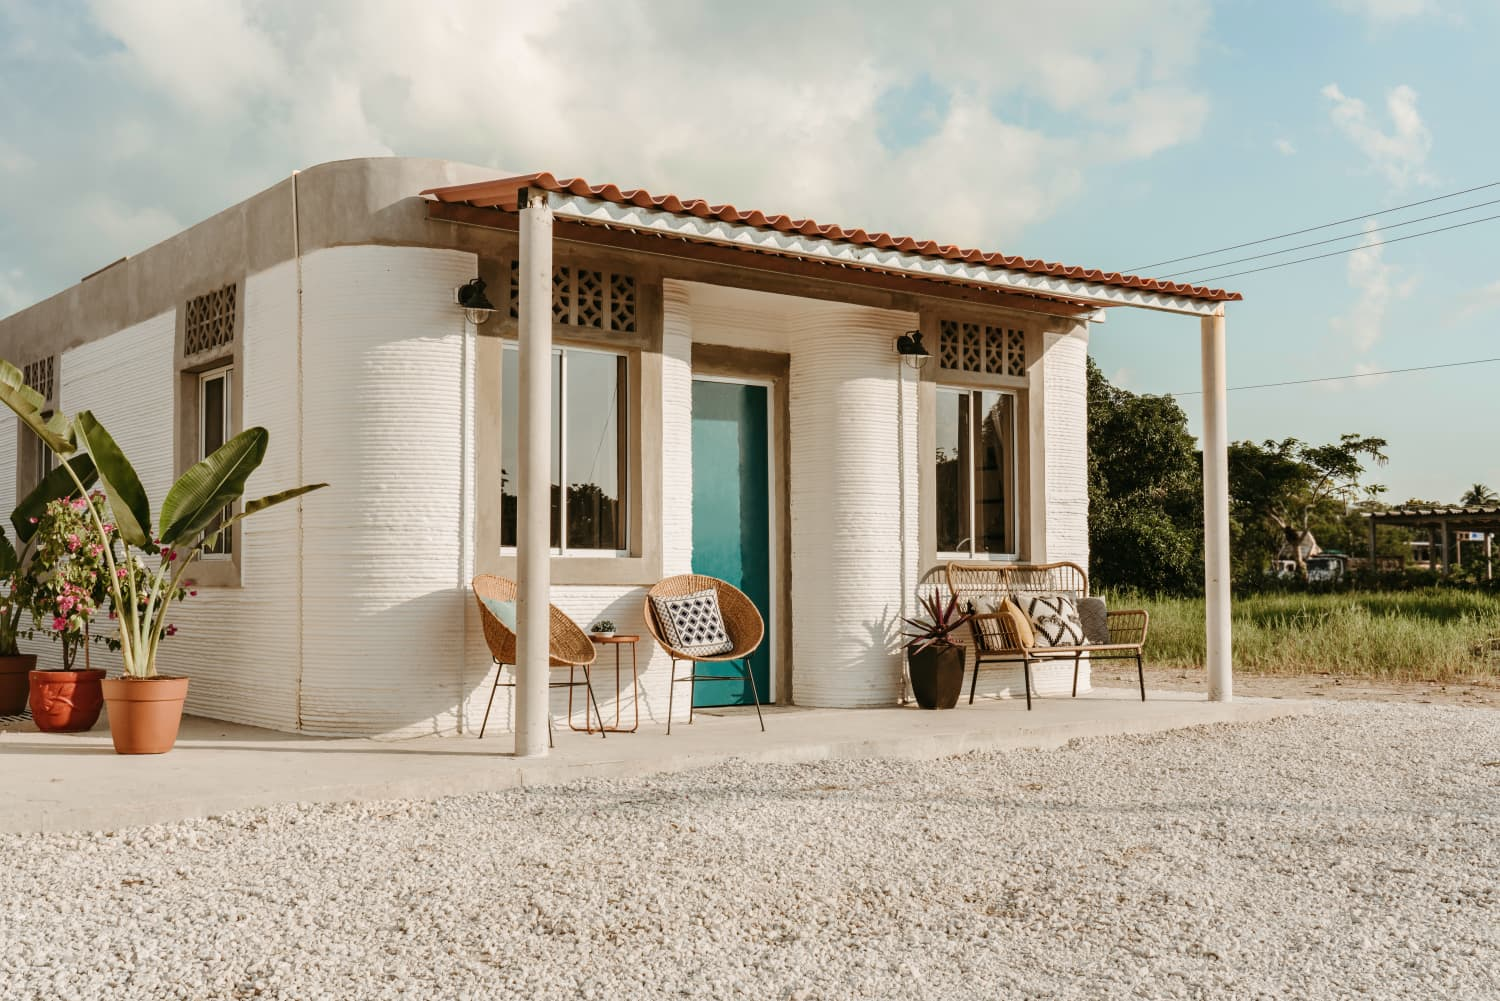 This Non-Profit Is Building 3D Printed Tiny Houses for Families in Rural Mexico